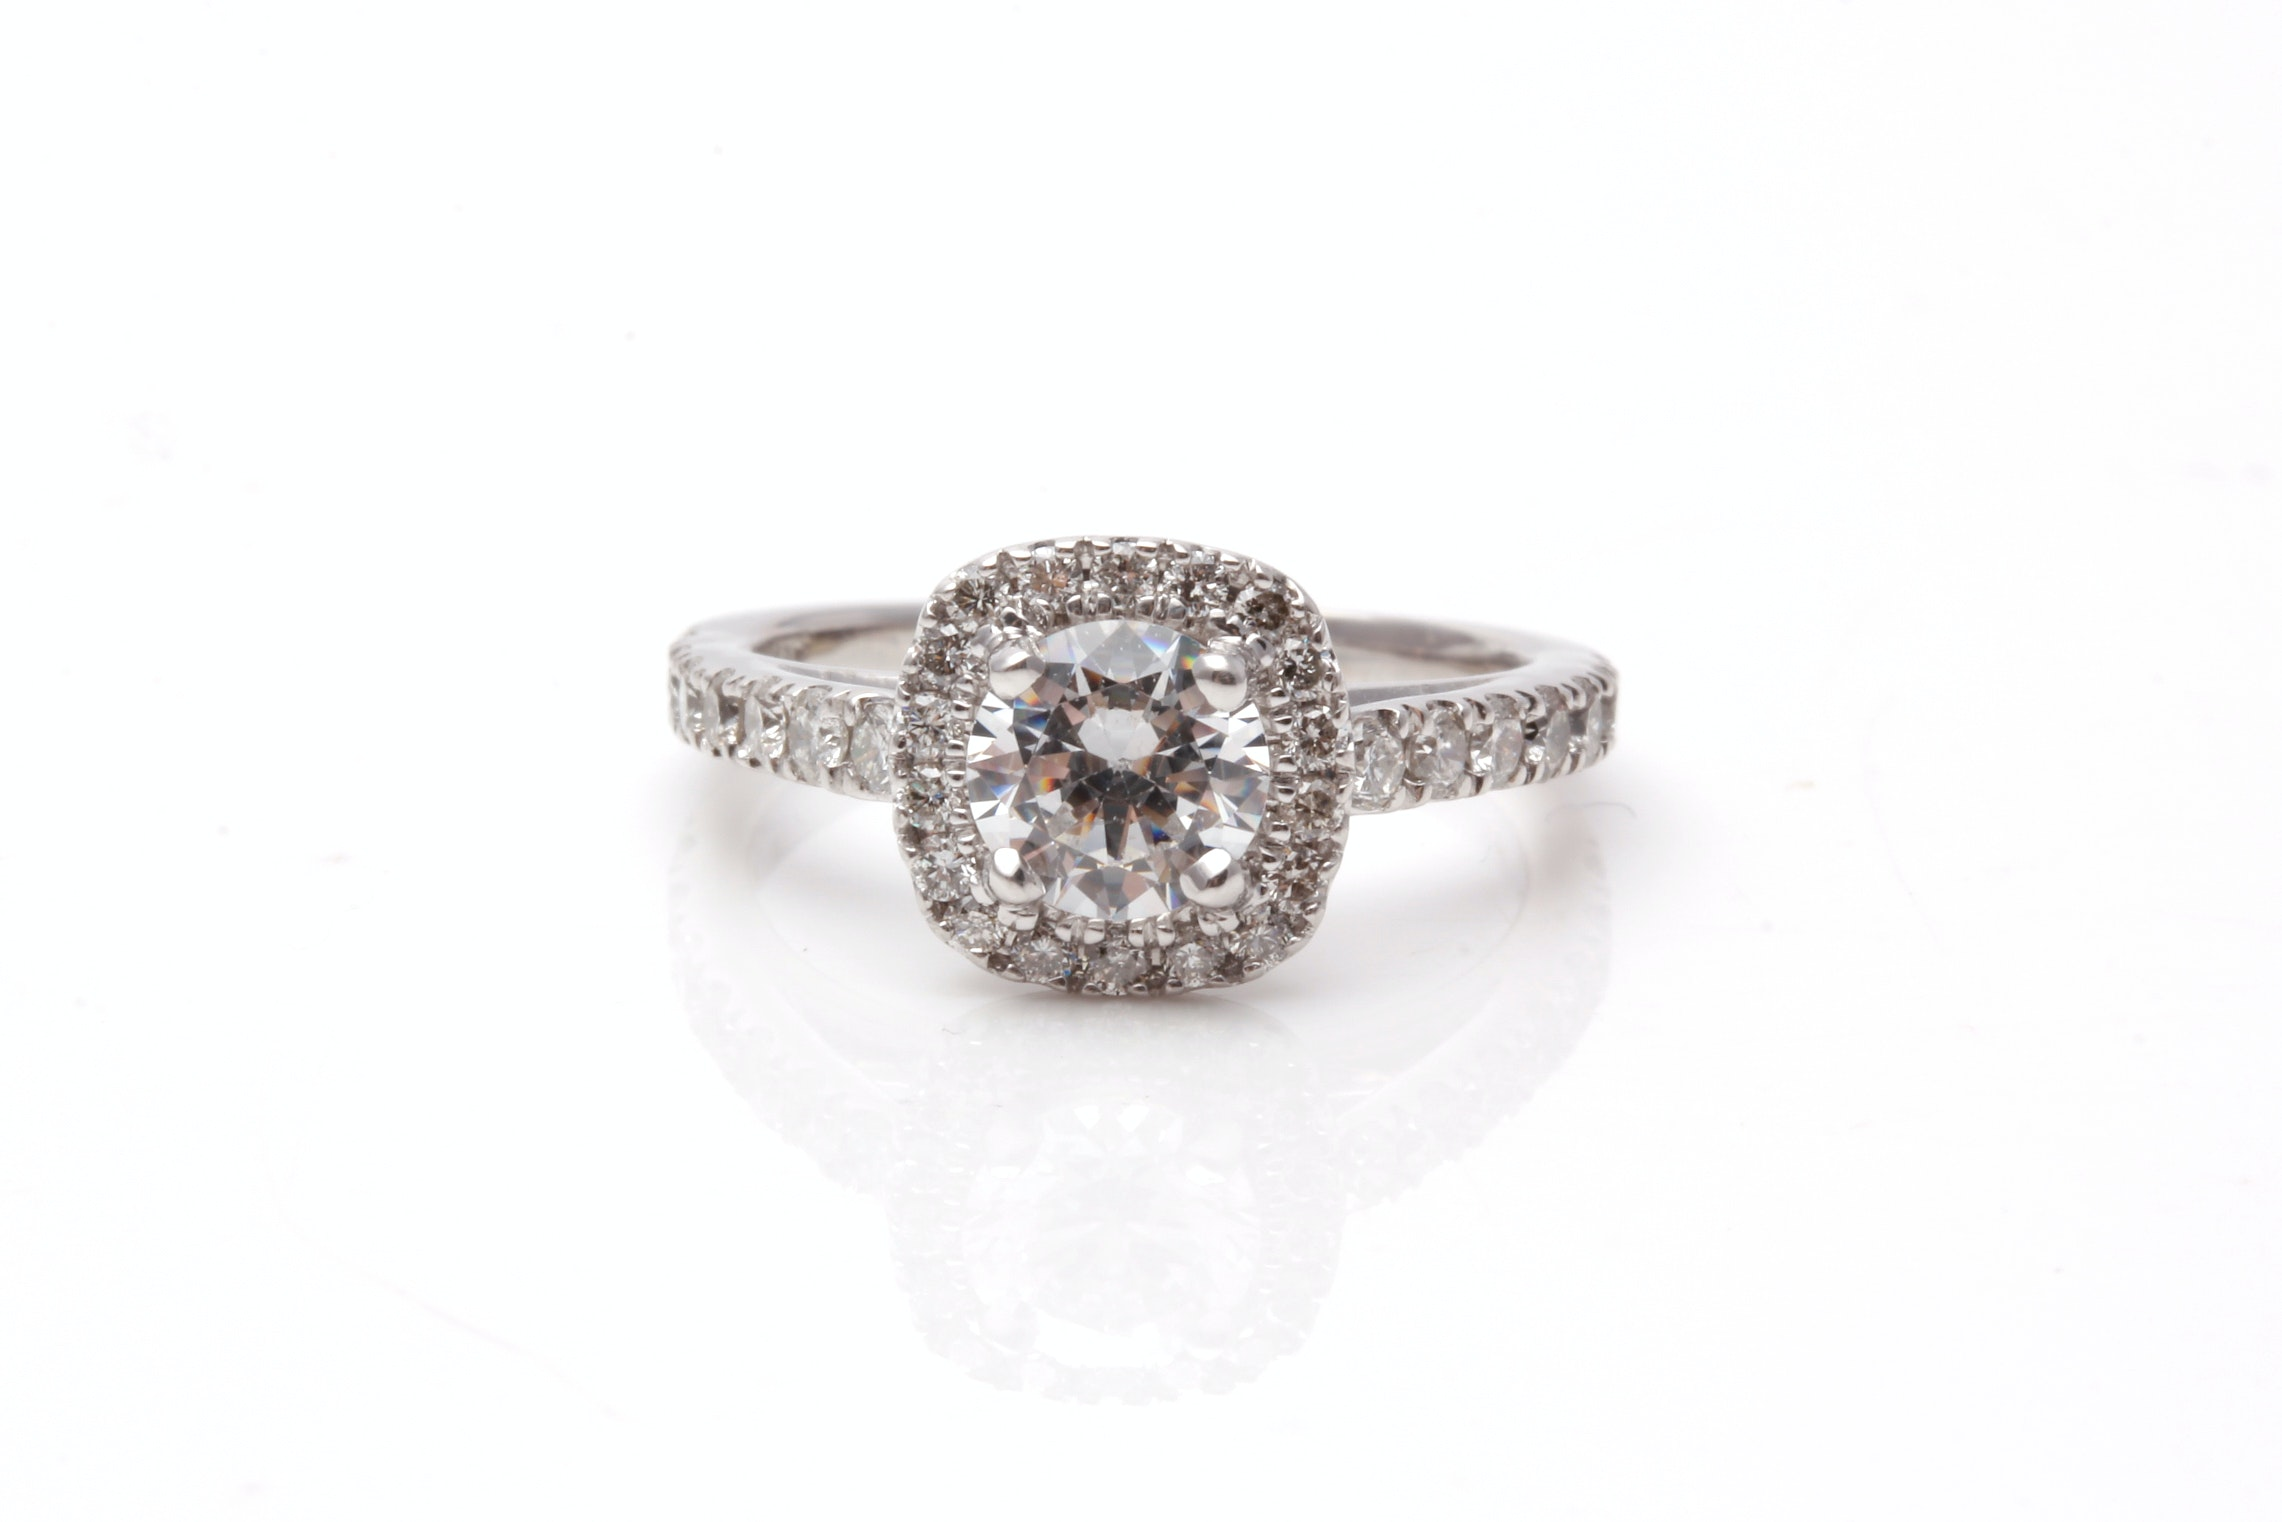 14K White Gold Diamond Semi Mount Ring With Cubic Zirconia Center Stone